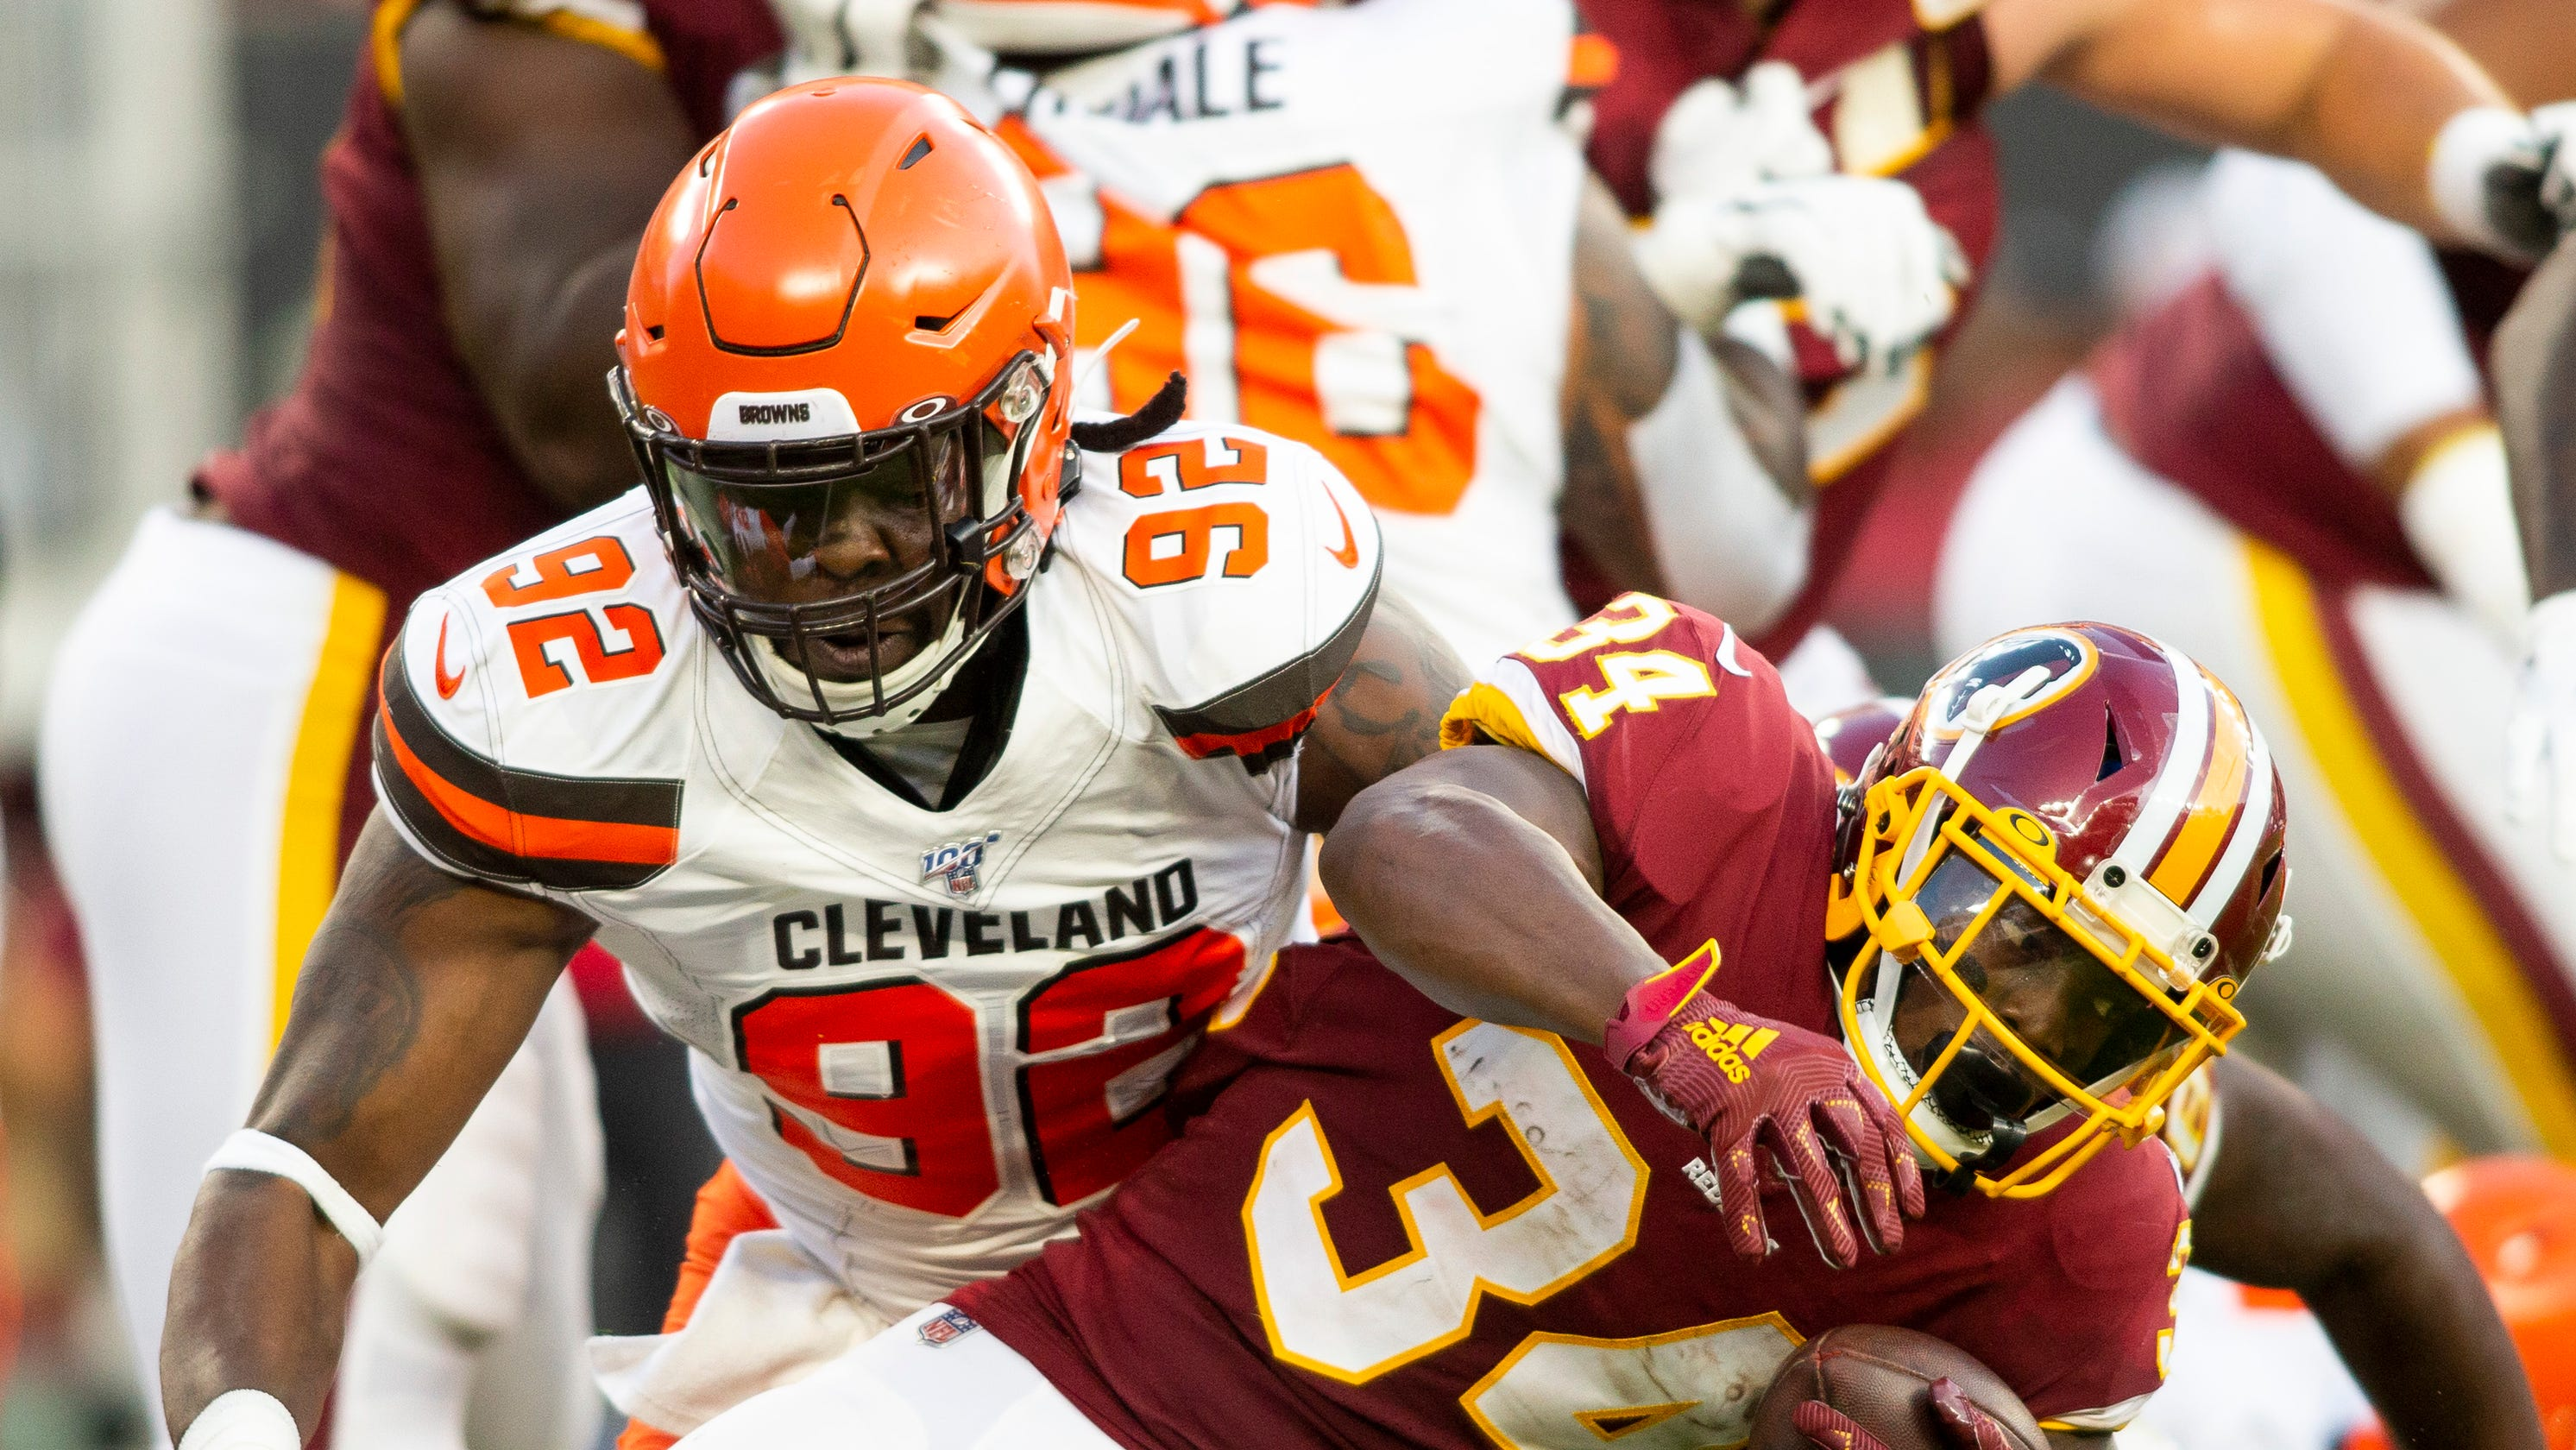 Cleveland Browns DE Chad Thomas immobilized, carted off from practice on backboard